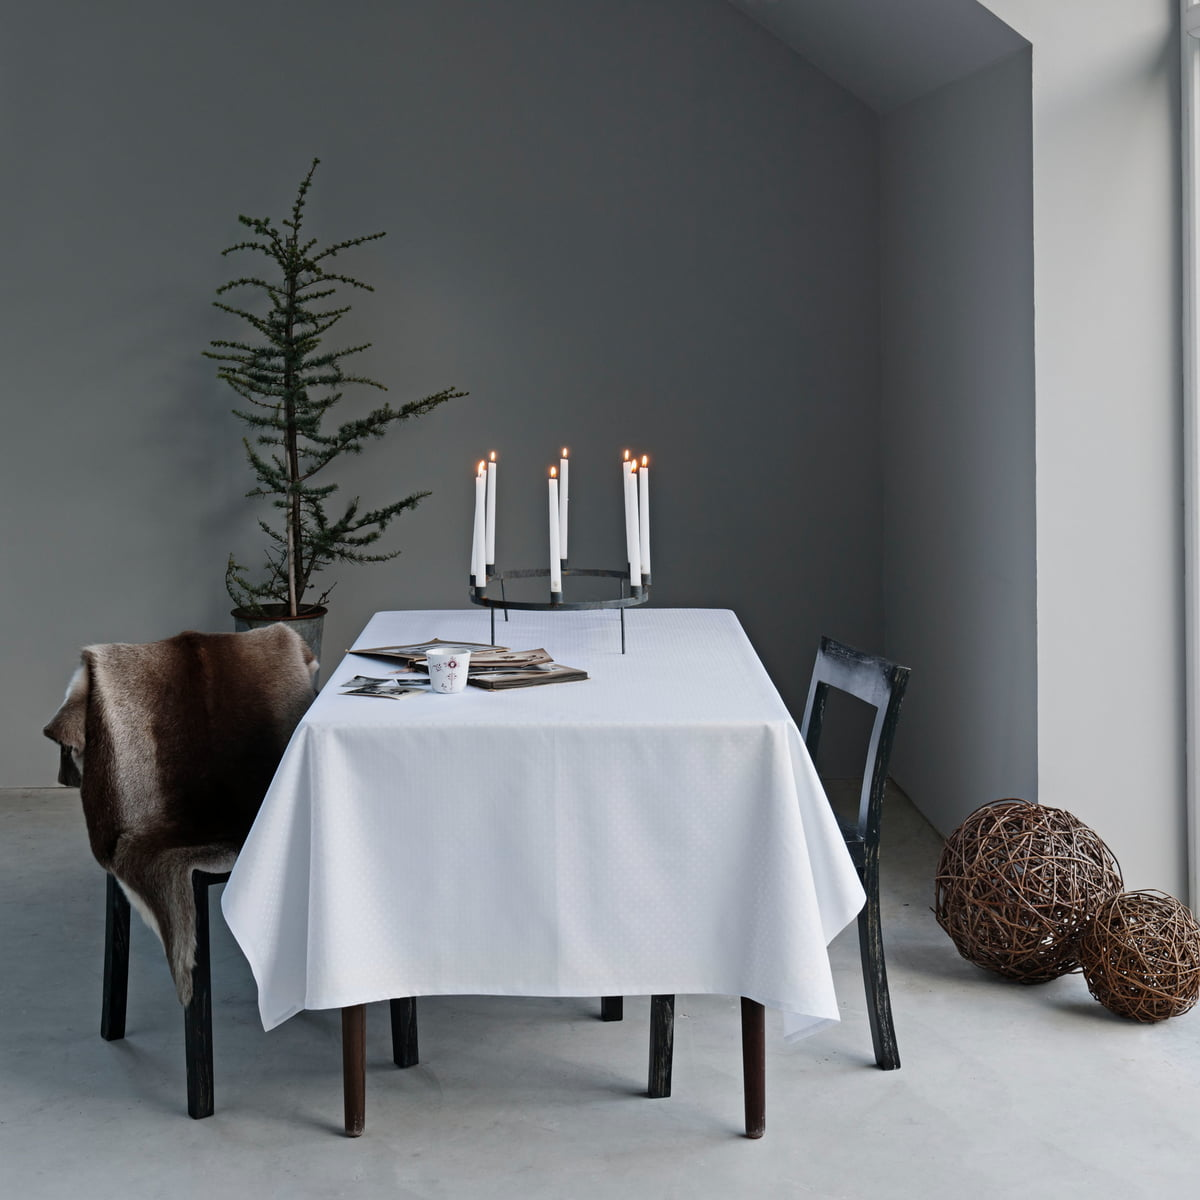 snowflakes tablecloth by georg jensen damask. Black Bedroom Furniture Sets. Home Design Ideas